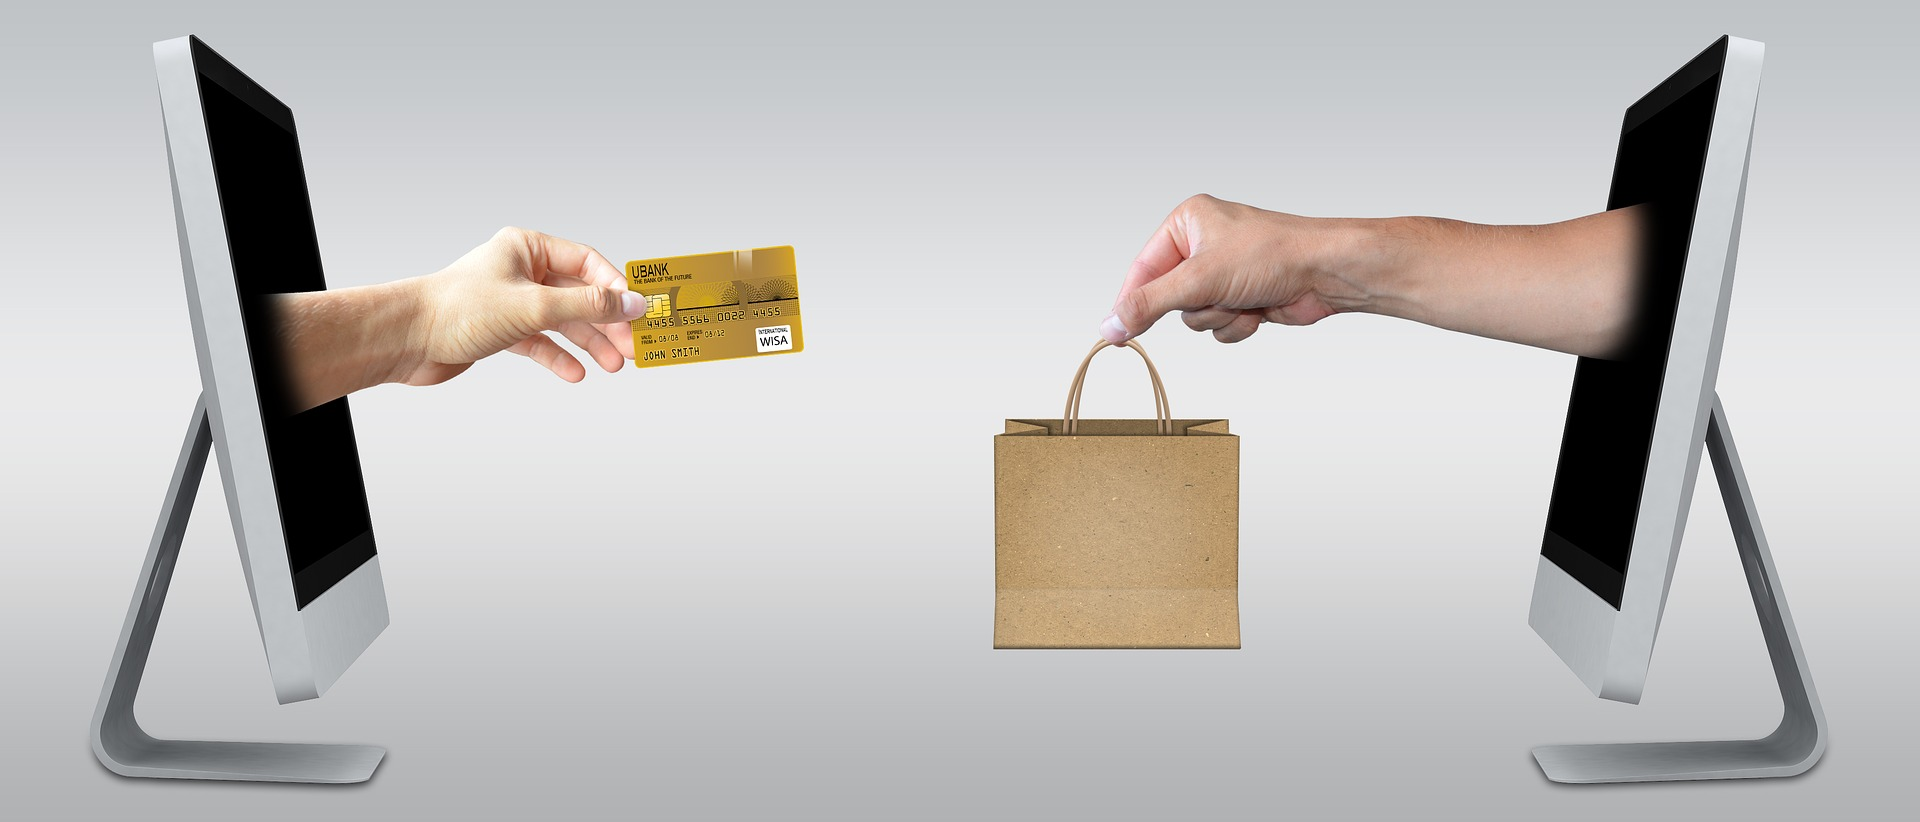 Image illustrating e-commerce/online transactions